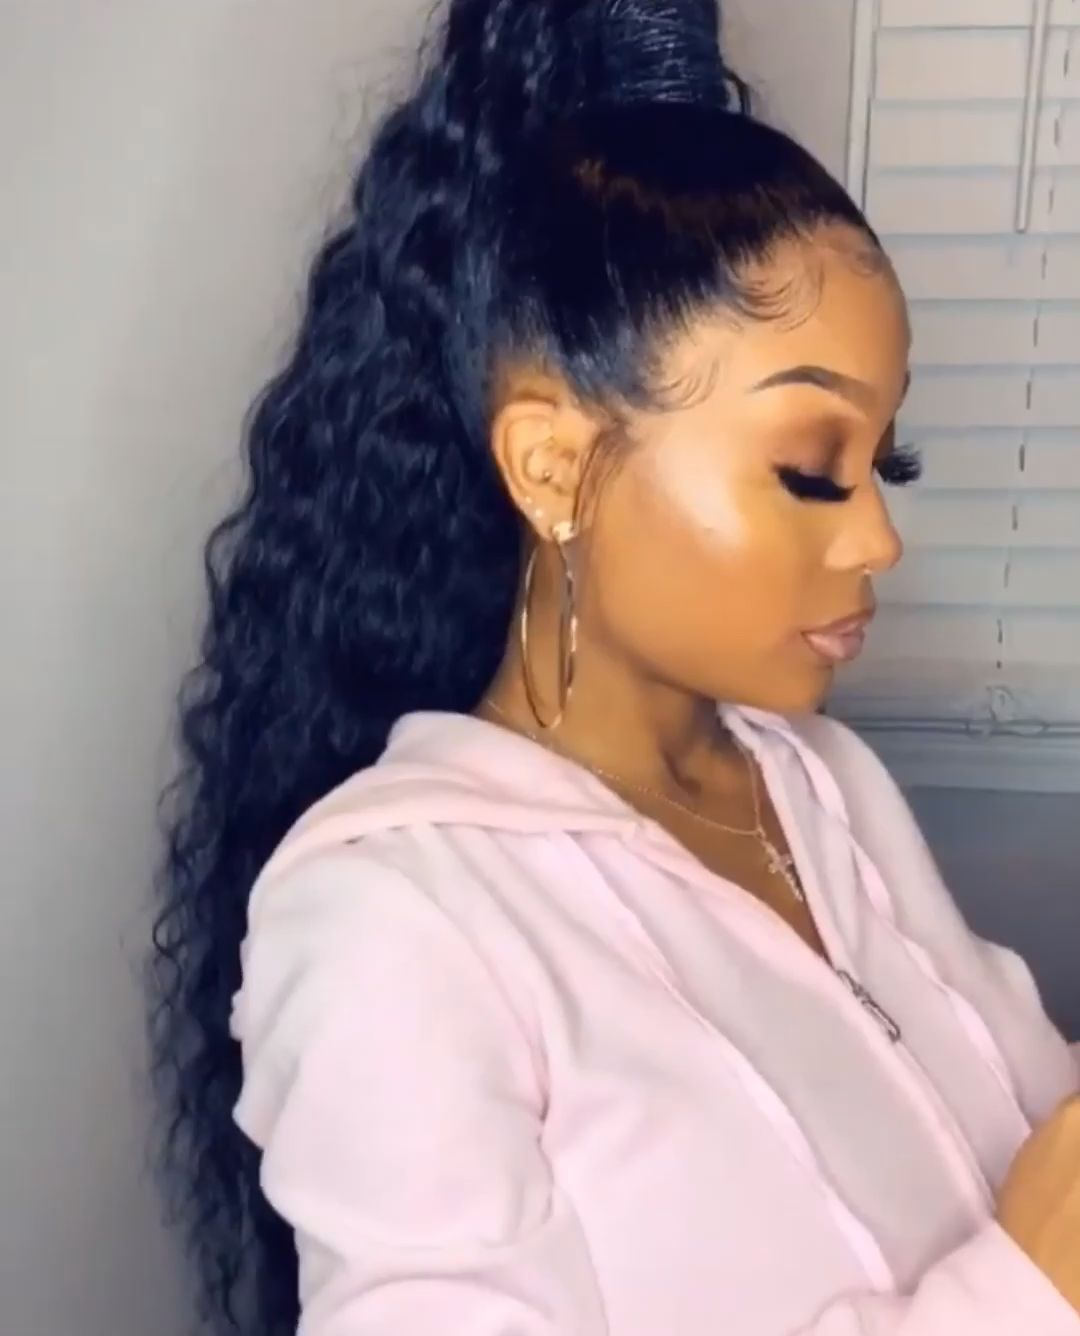 Pin By Boujee Niyah On H A I R Video Long Ponytail Hairstyles Black Ponytail Hairstyles Wig Hairstyles